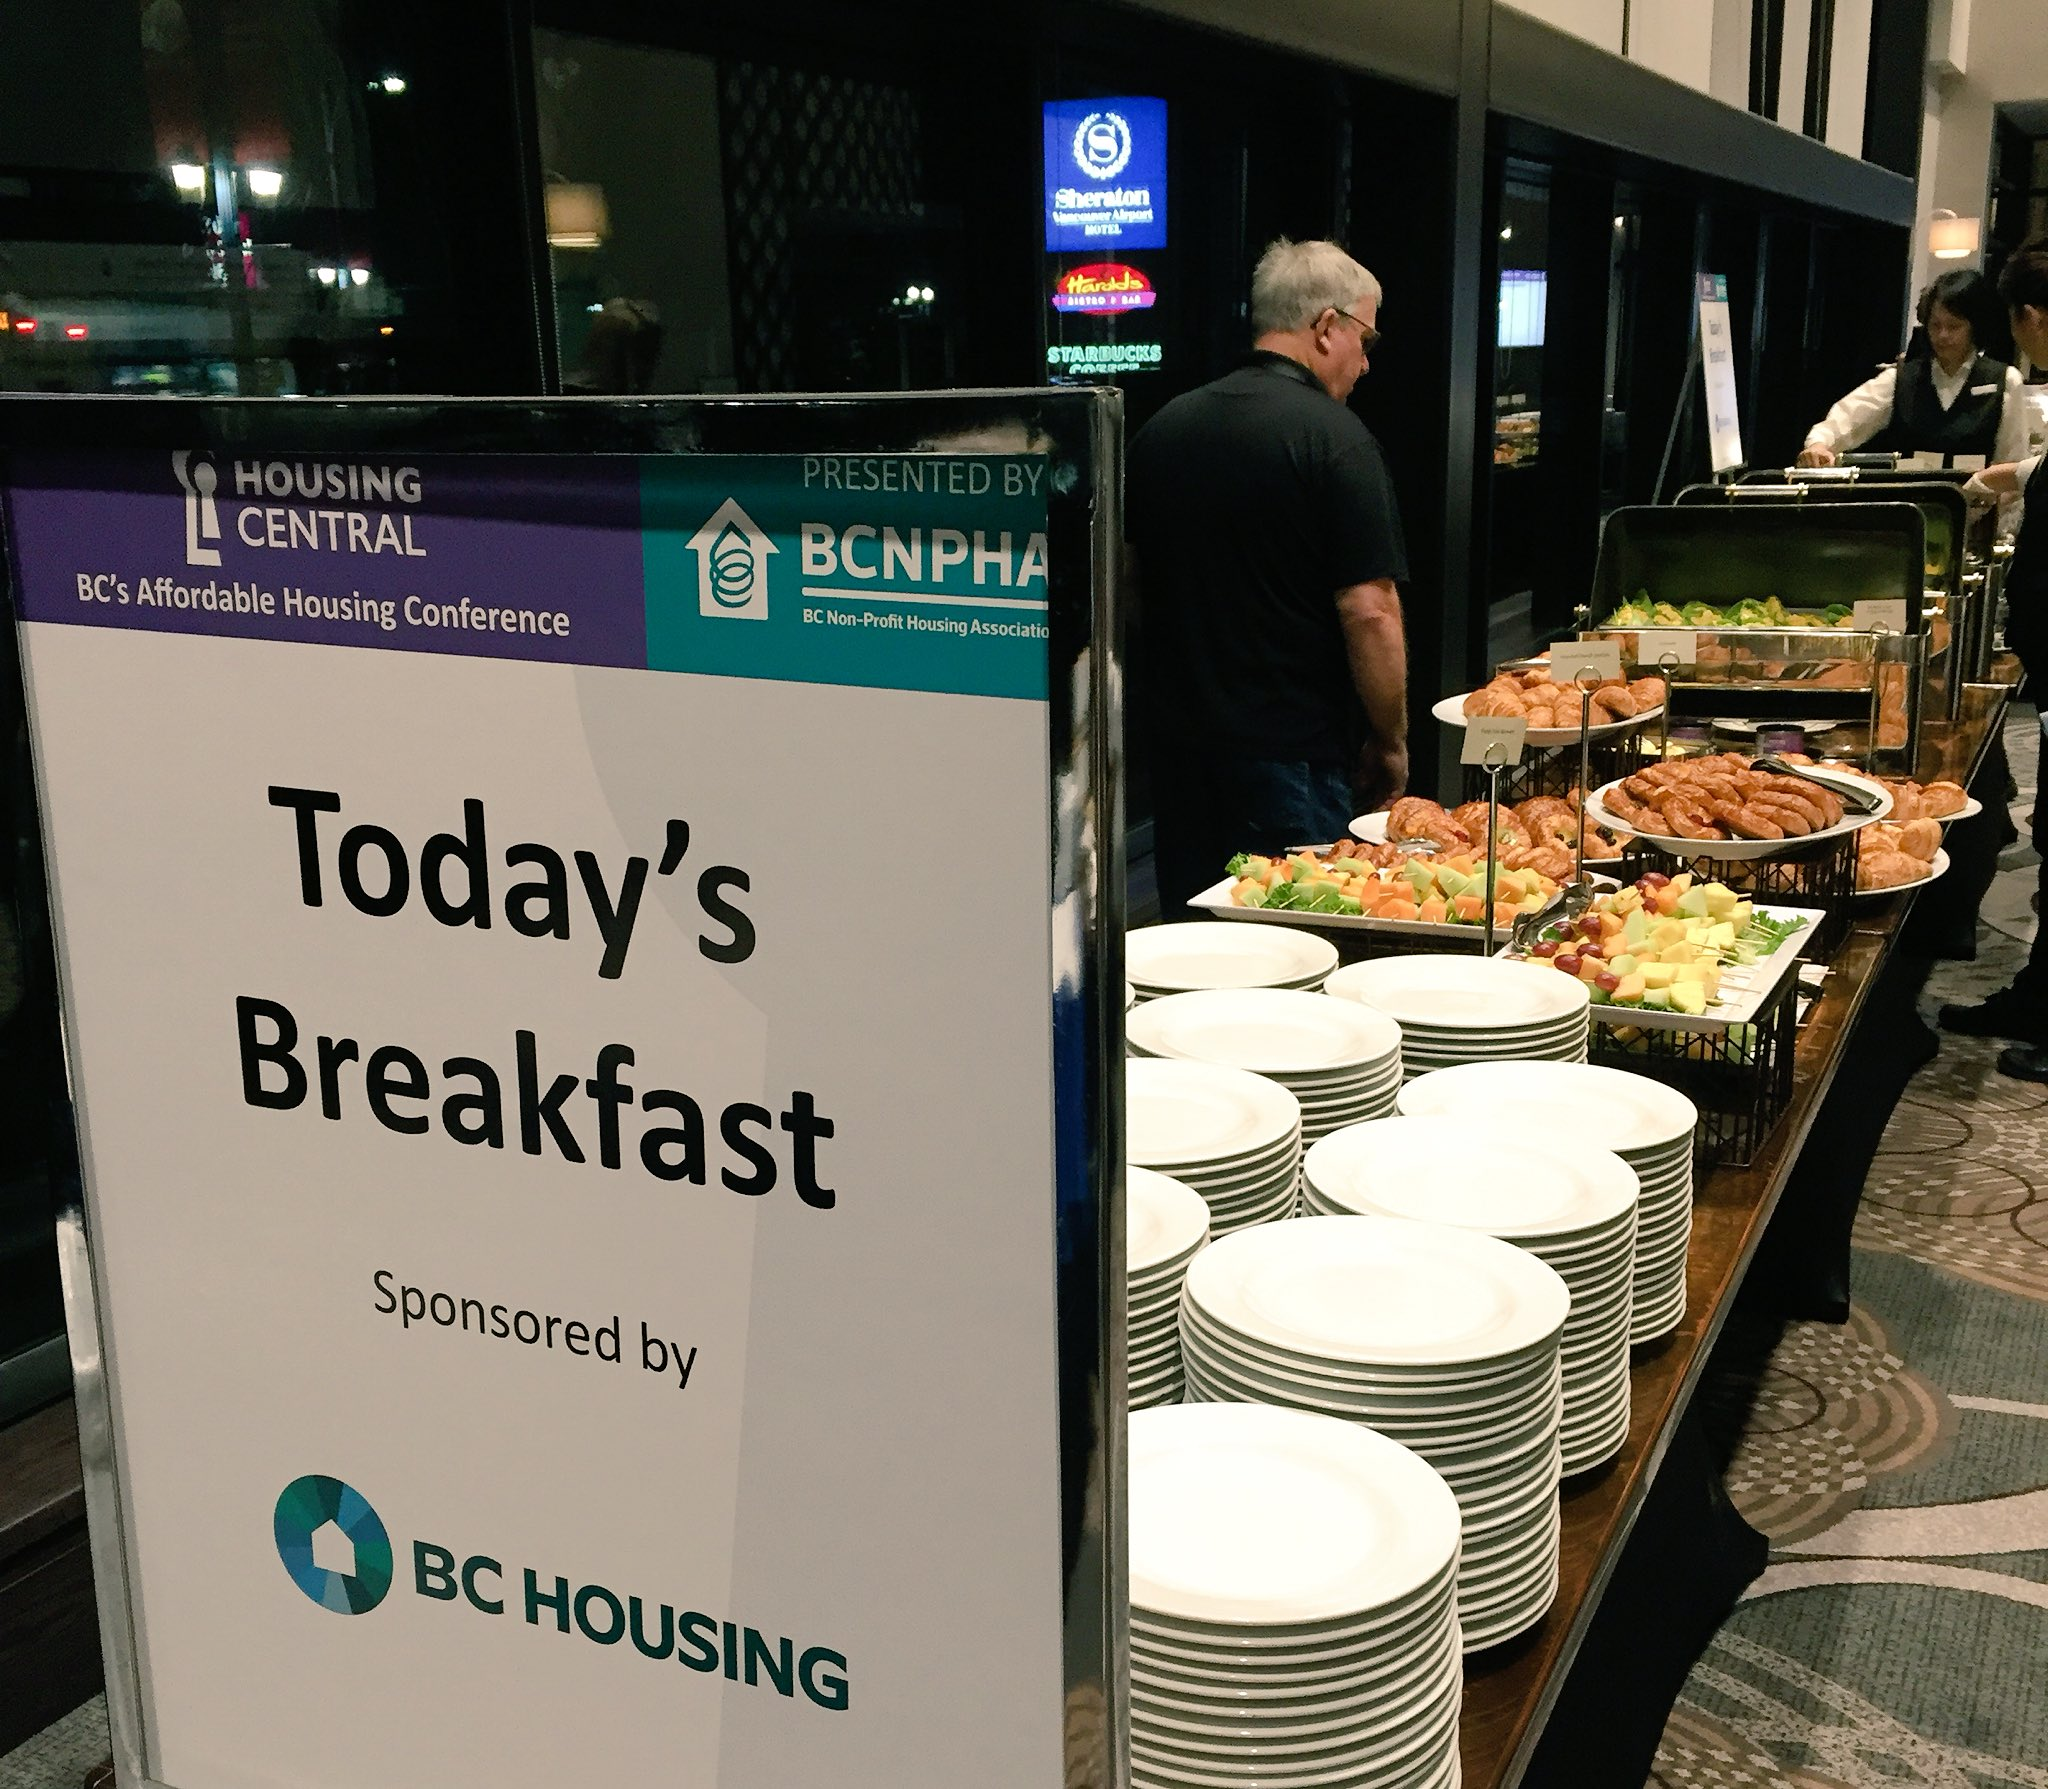 Thank you to Premier Sponsor @bc_housing for generously providing this morning's breakfast! #HousingCentral https://t.co/CpIpQgmQQ2